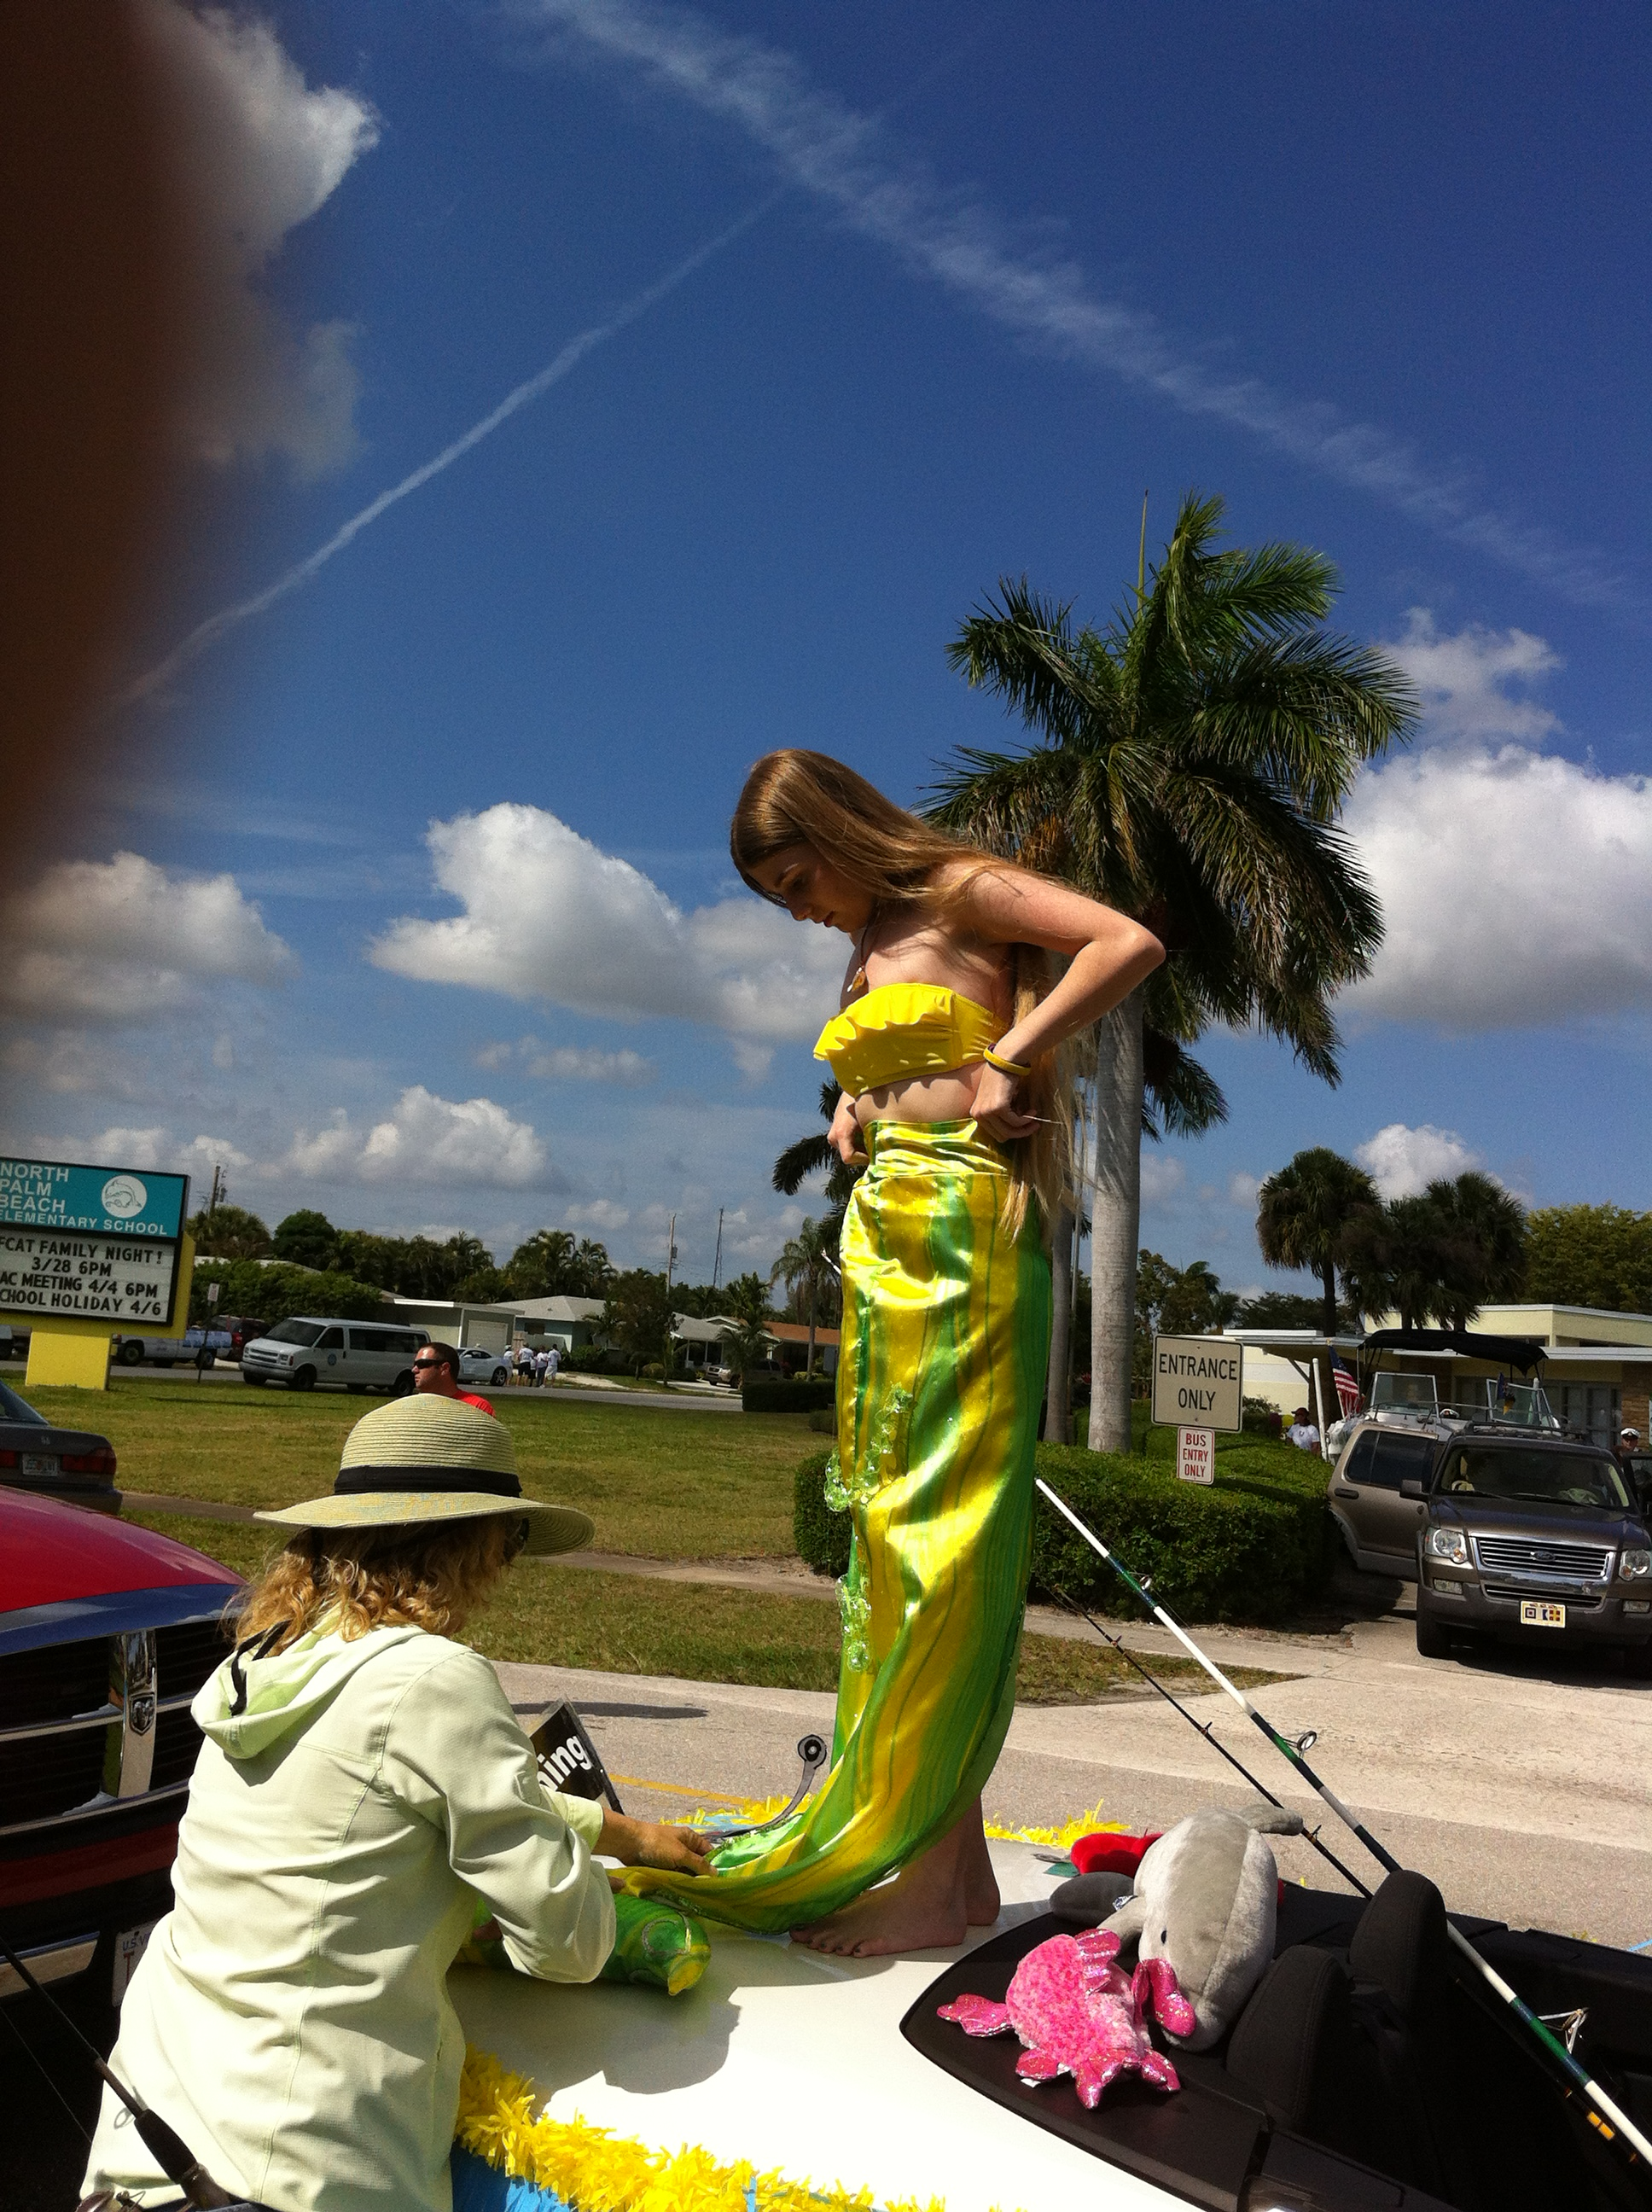 Prepping the mermaid before starting the parade